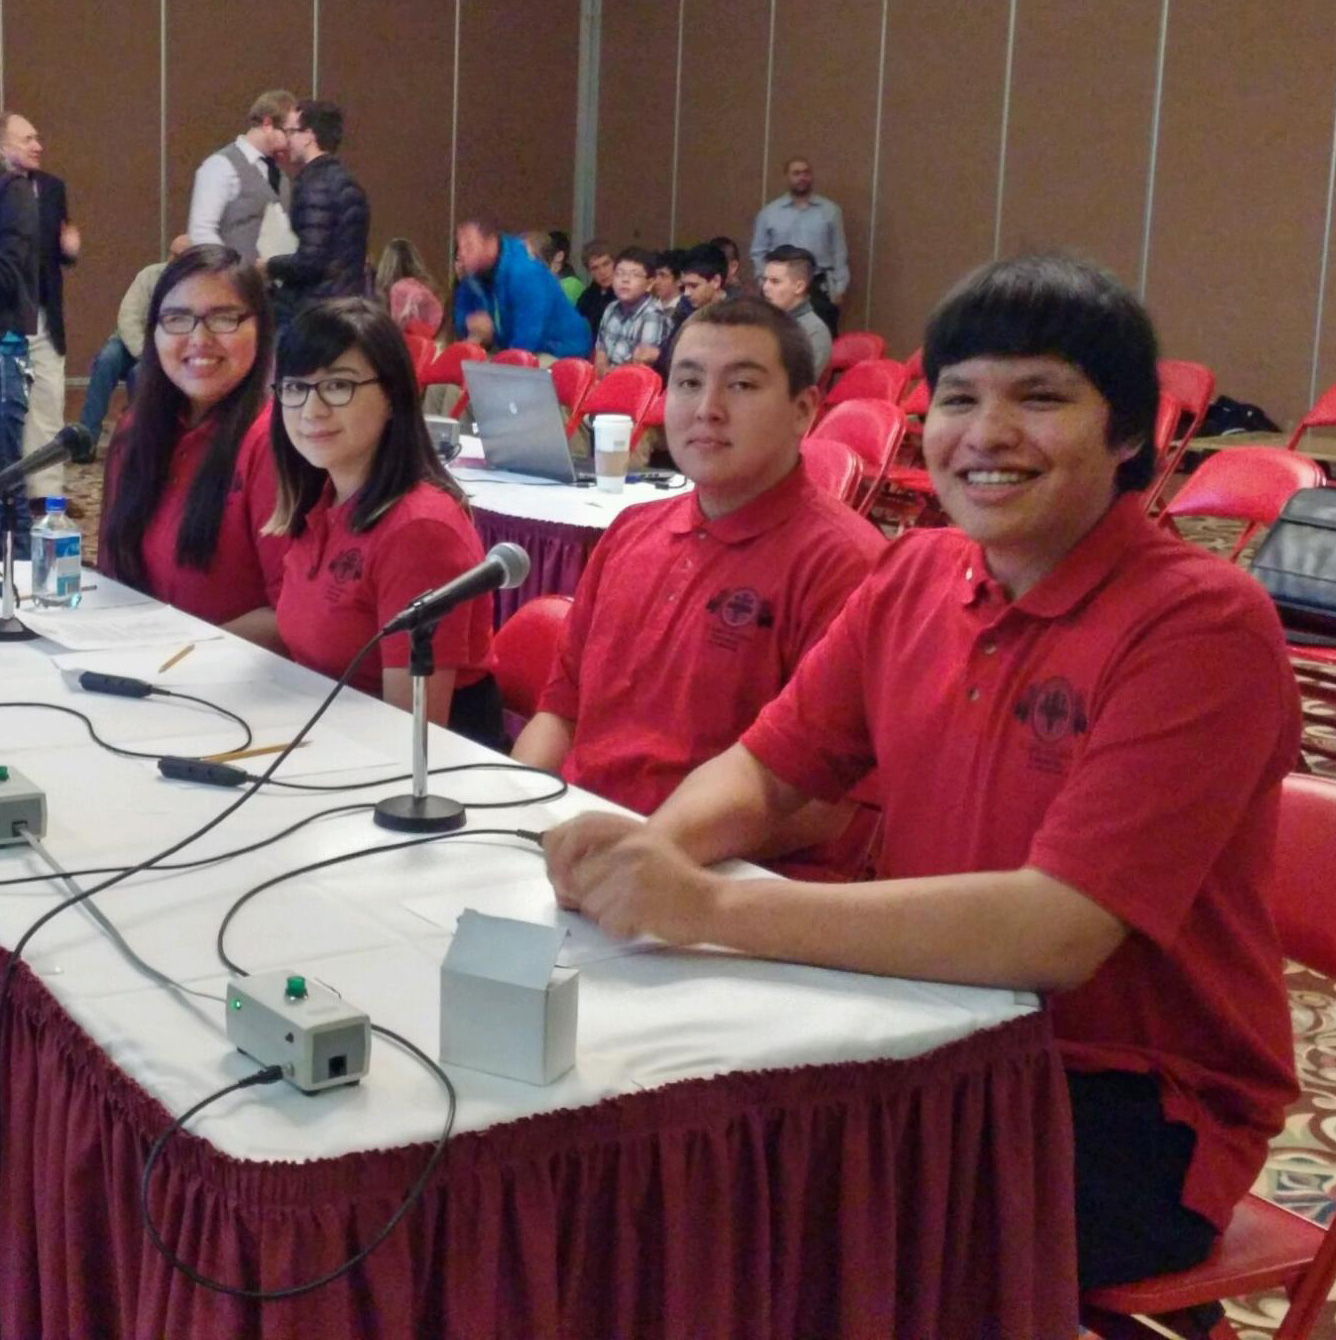 St. Joseph's Knowledge Bowl Team took 3rd place at LNI.